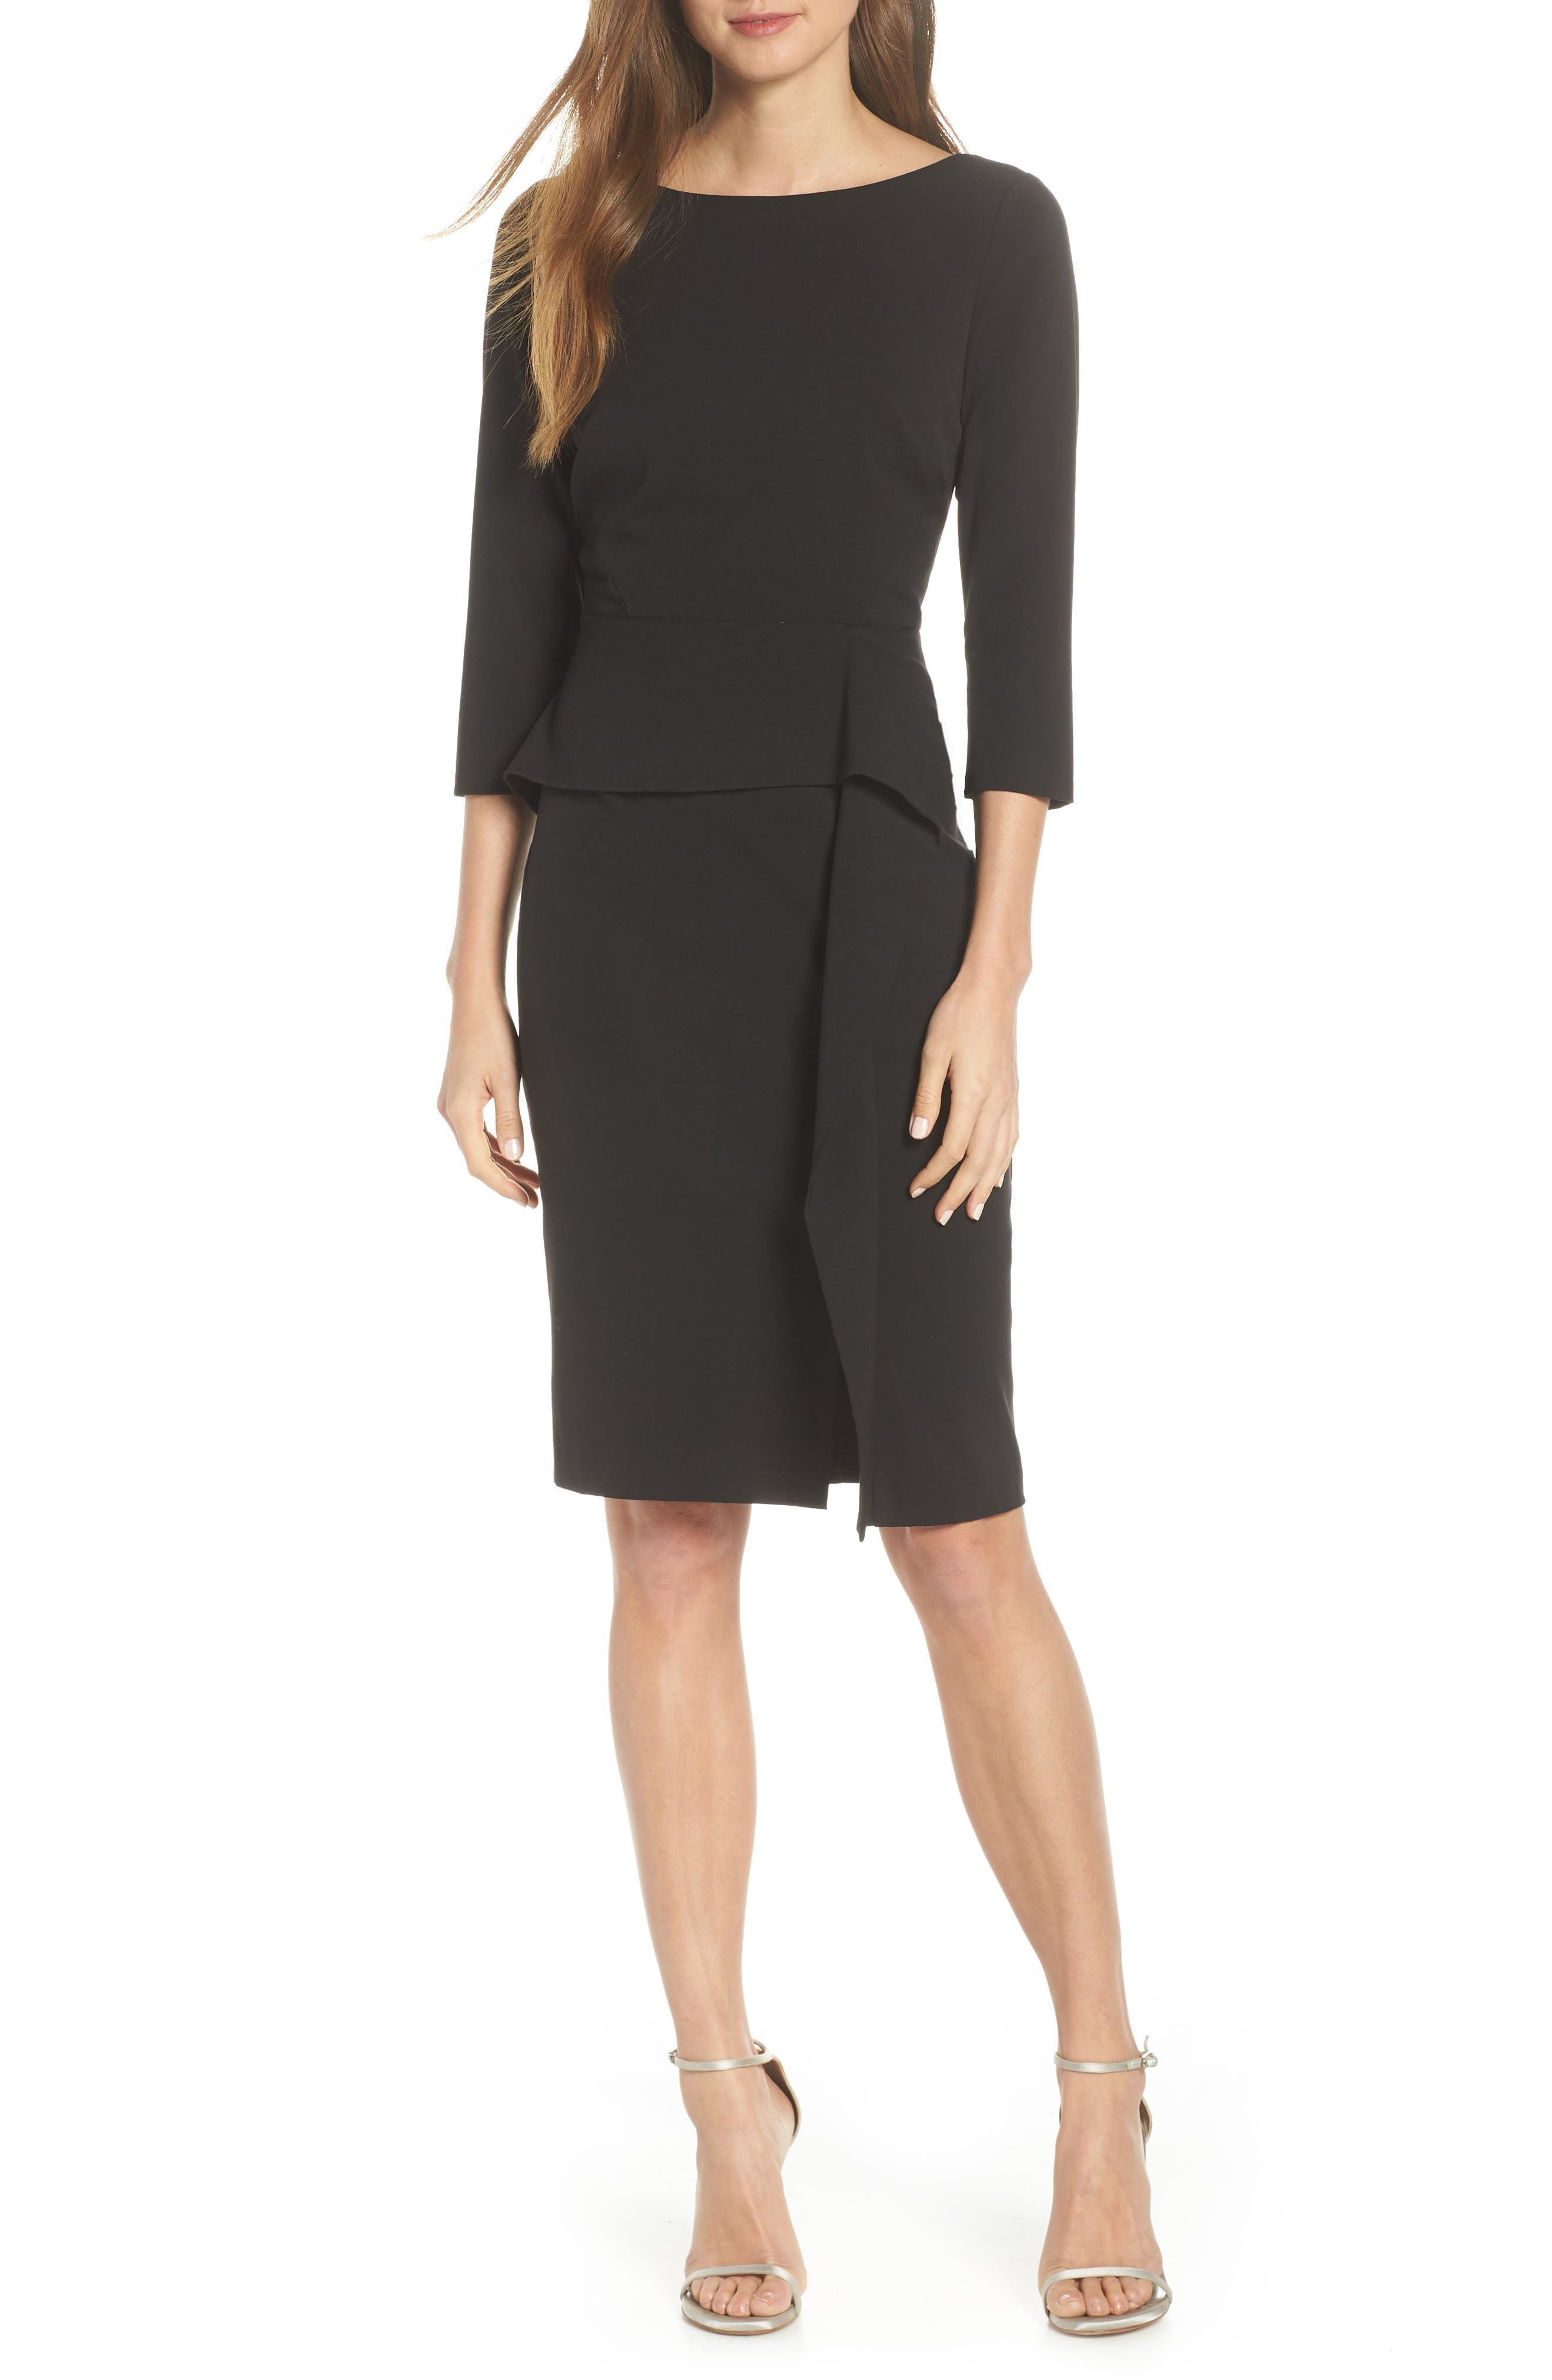 VINCE CAMUTO, Angled Ruffle Sheath Dress, Main thumbnail 1, color, BLACK